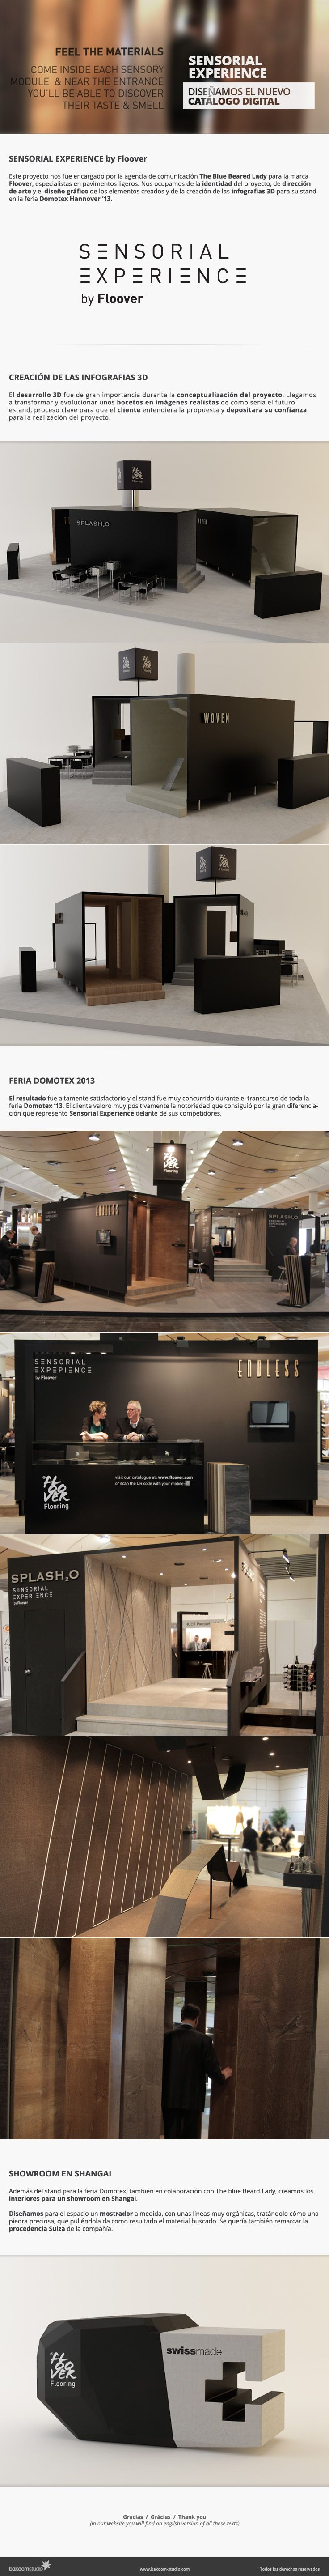 Sensorial Experience by Floover #artdirection #stands #rendering